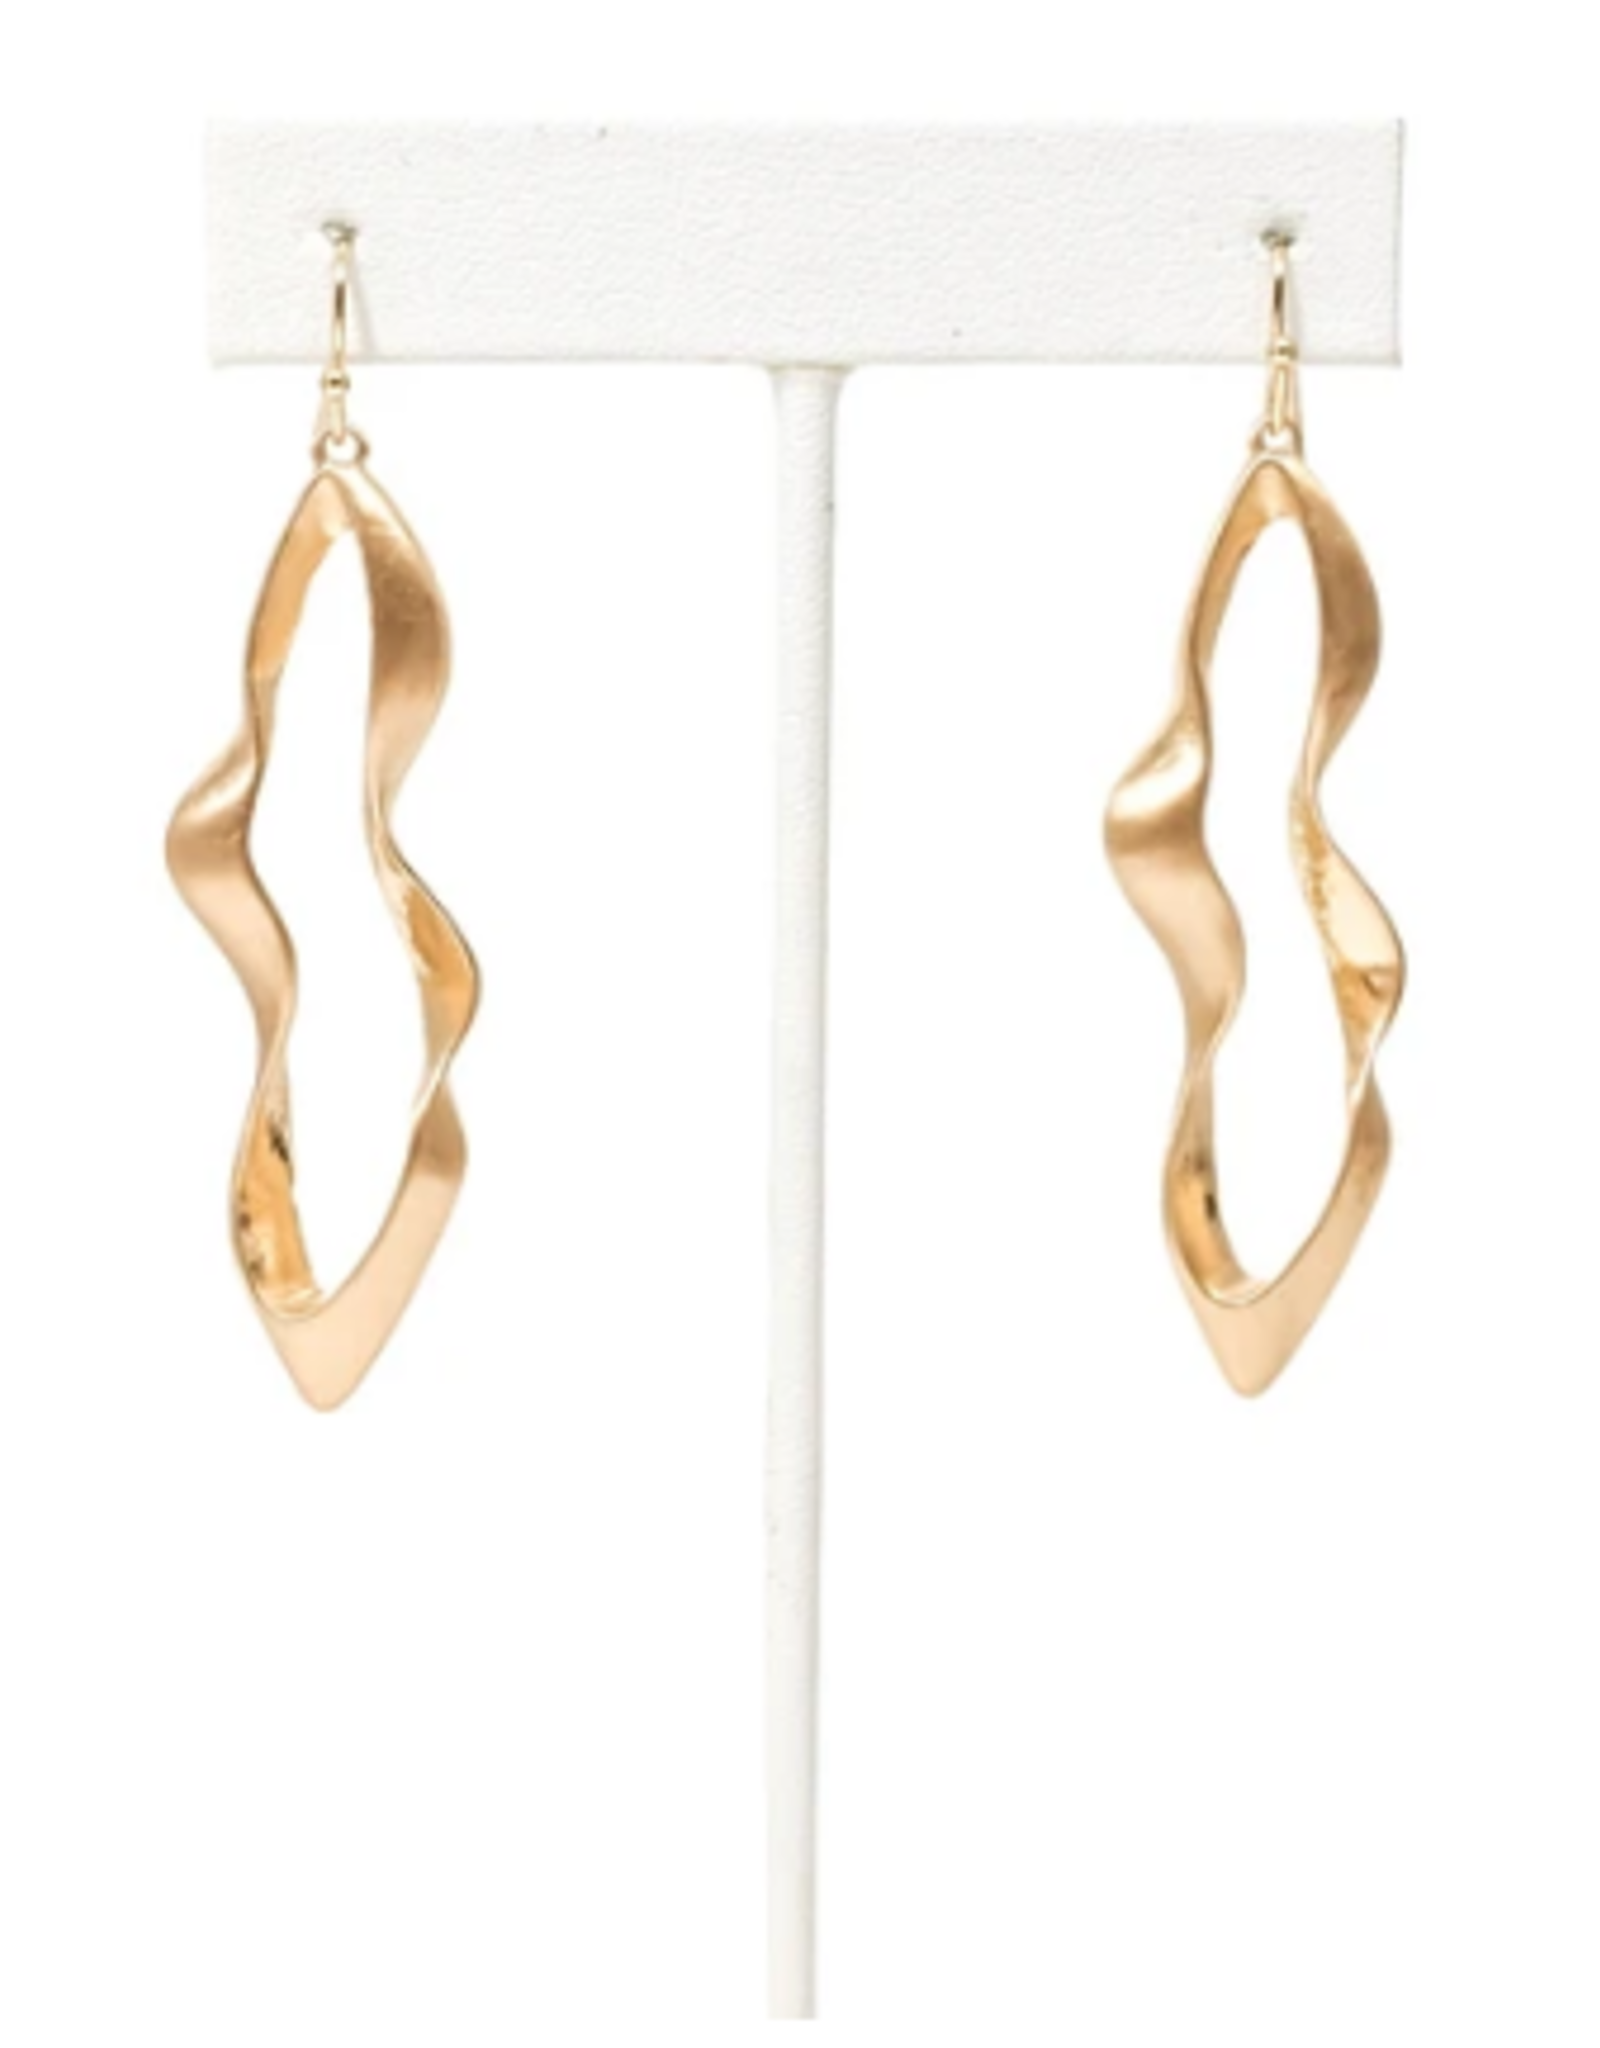 My Girl LA Zula Earrings